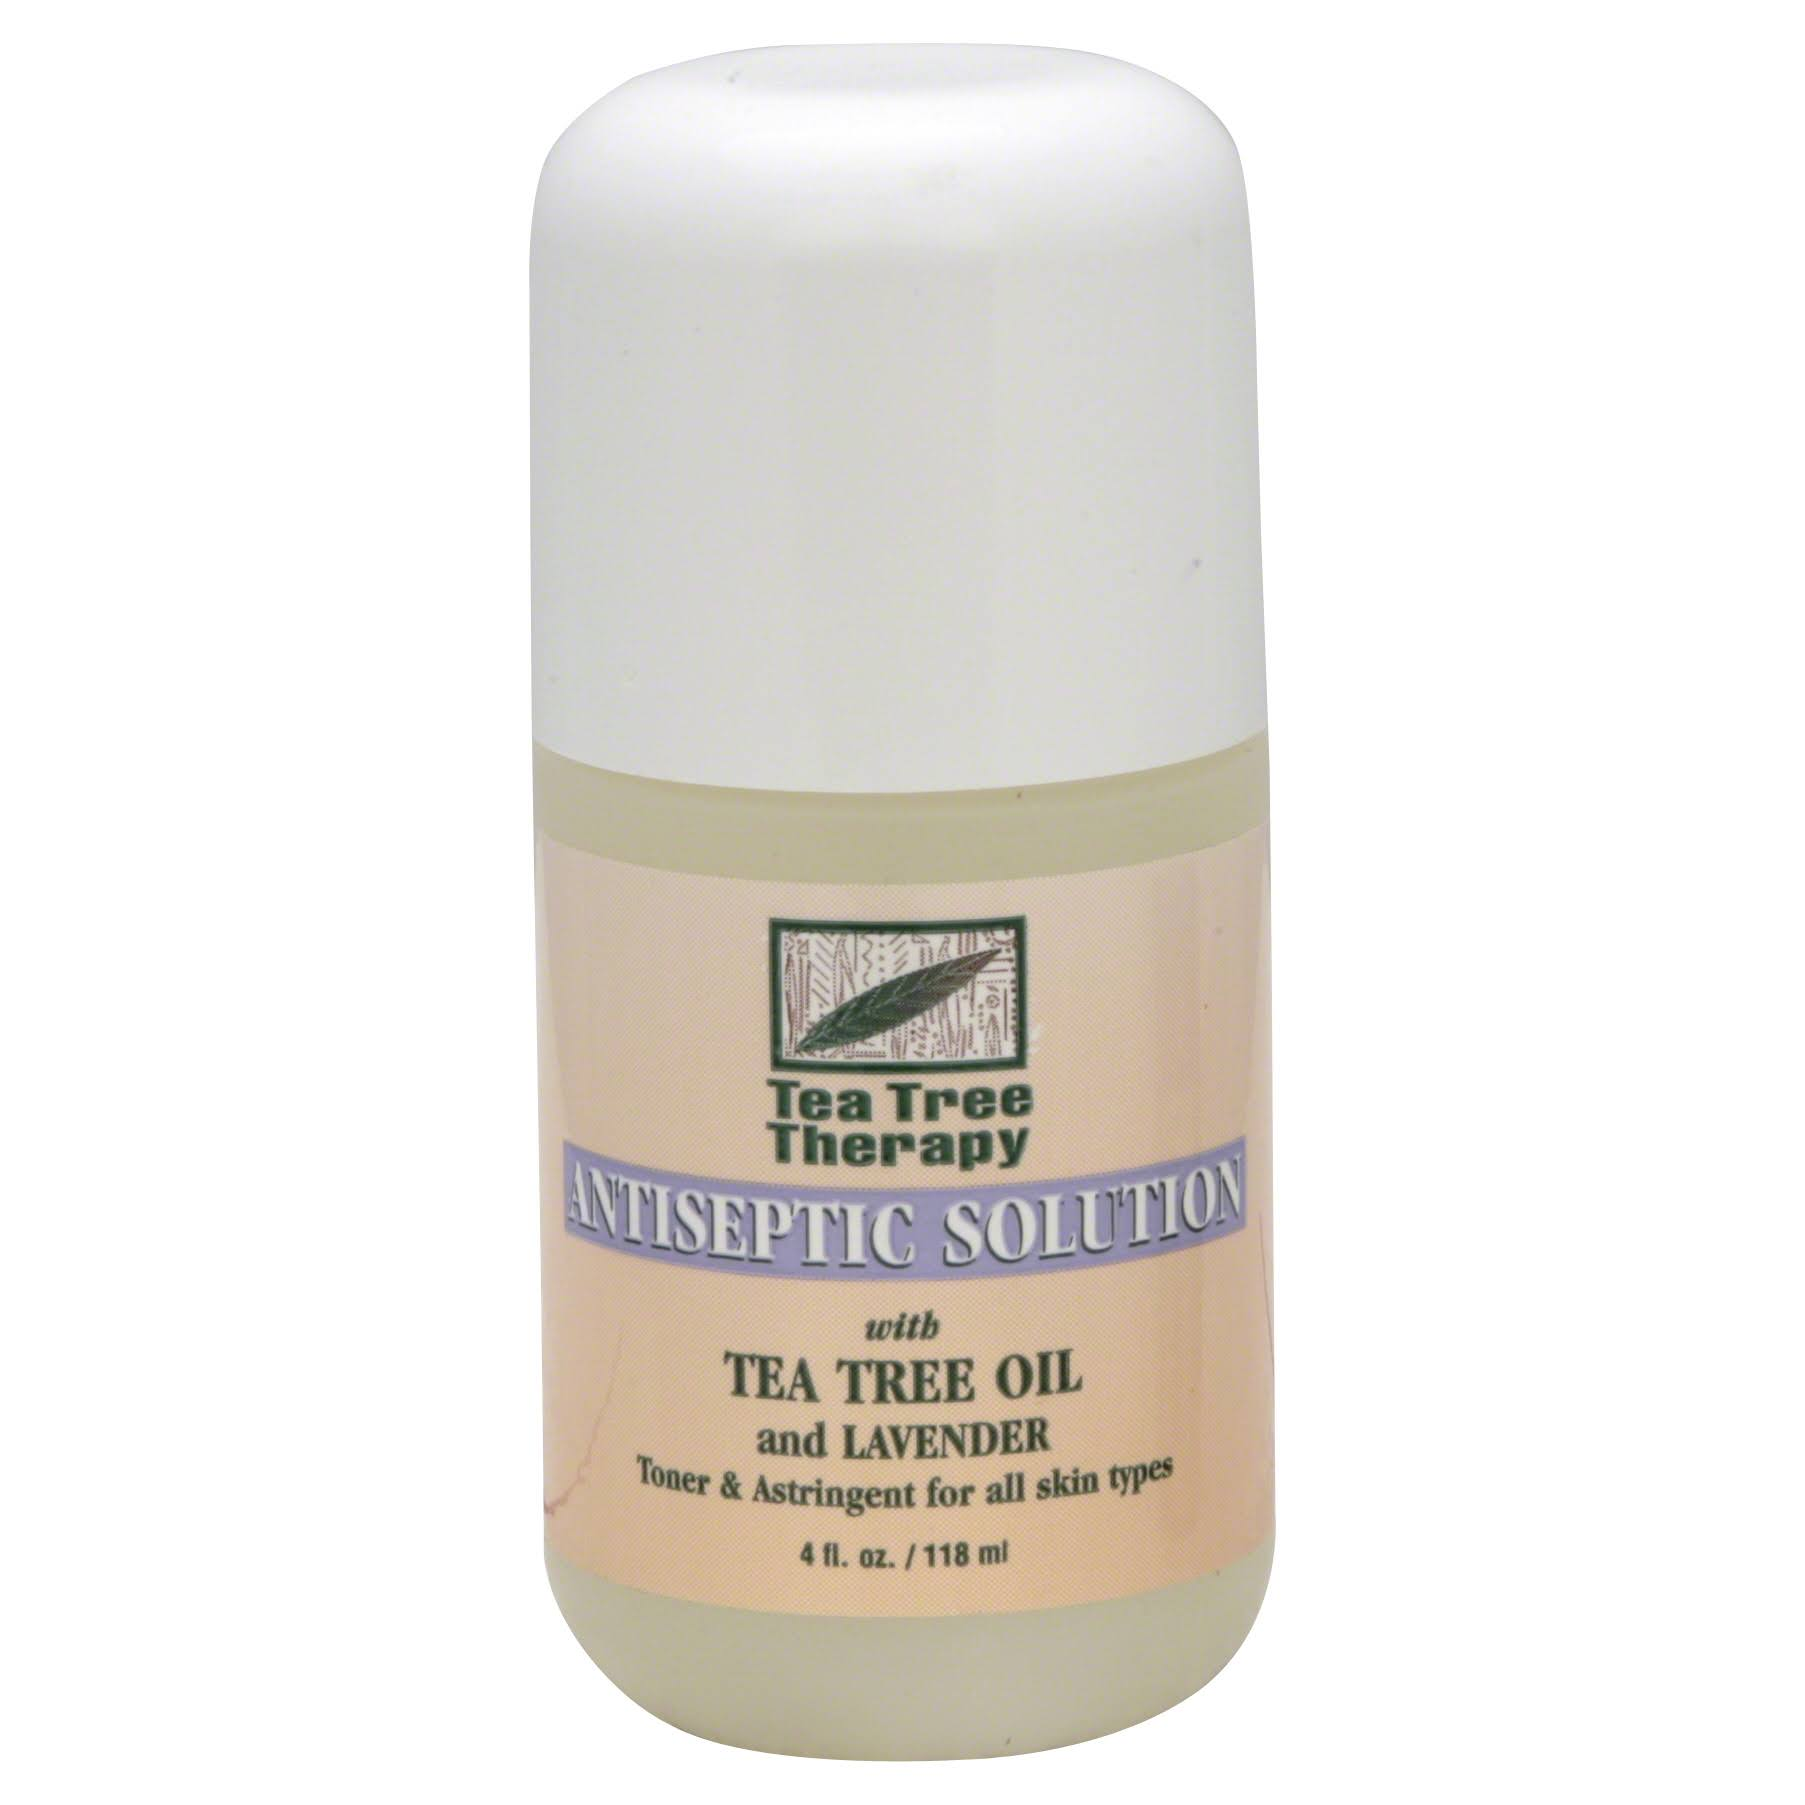 Tea Tree Therapy Antiseptic Solution - Tea Tree Oil and Lavender, 4oz